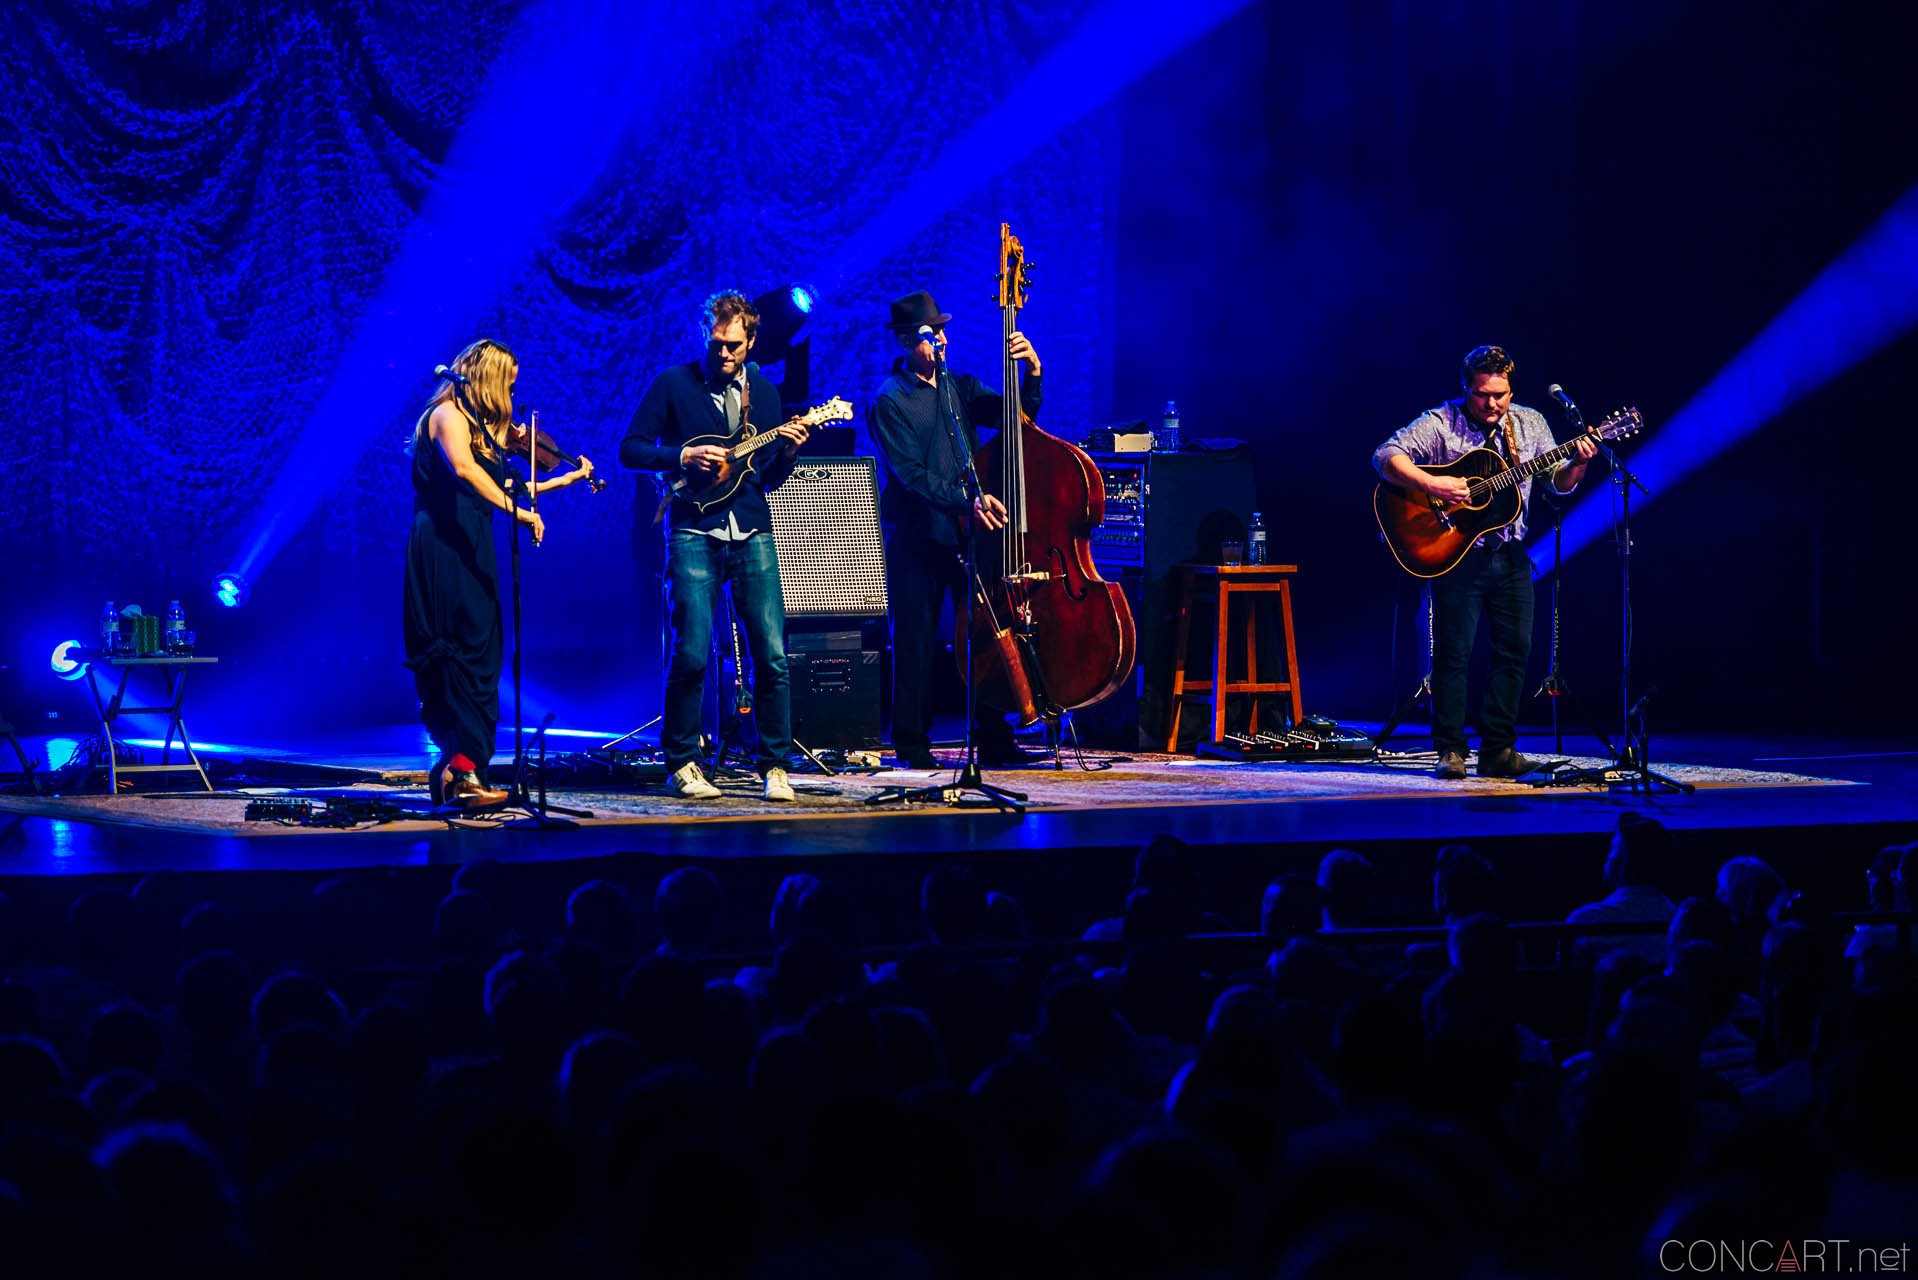 nickel_creek_old_national_centre_murat_theatre_indianapolis_2014-08